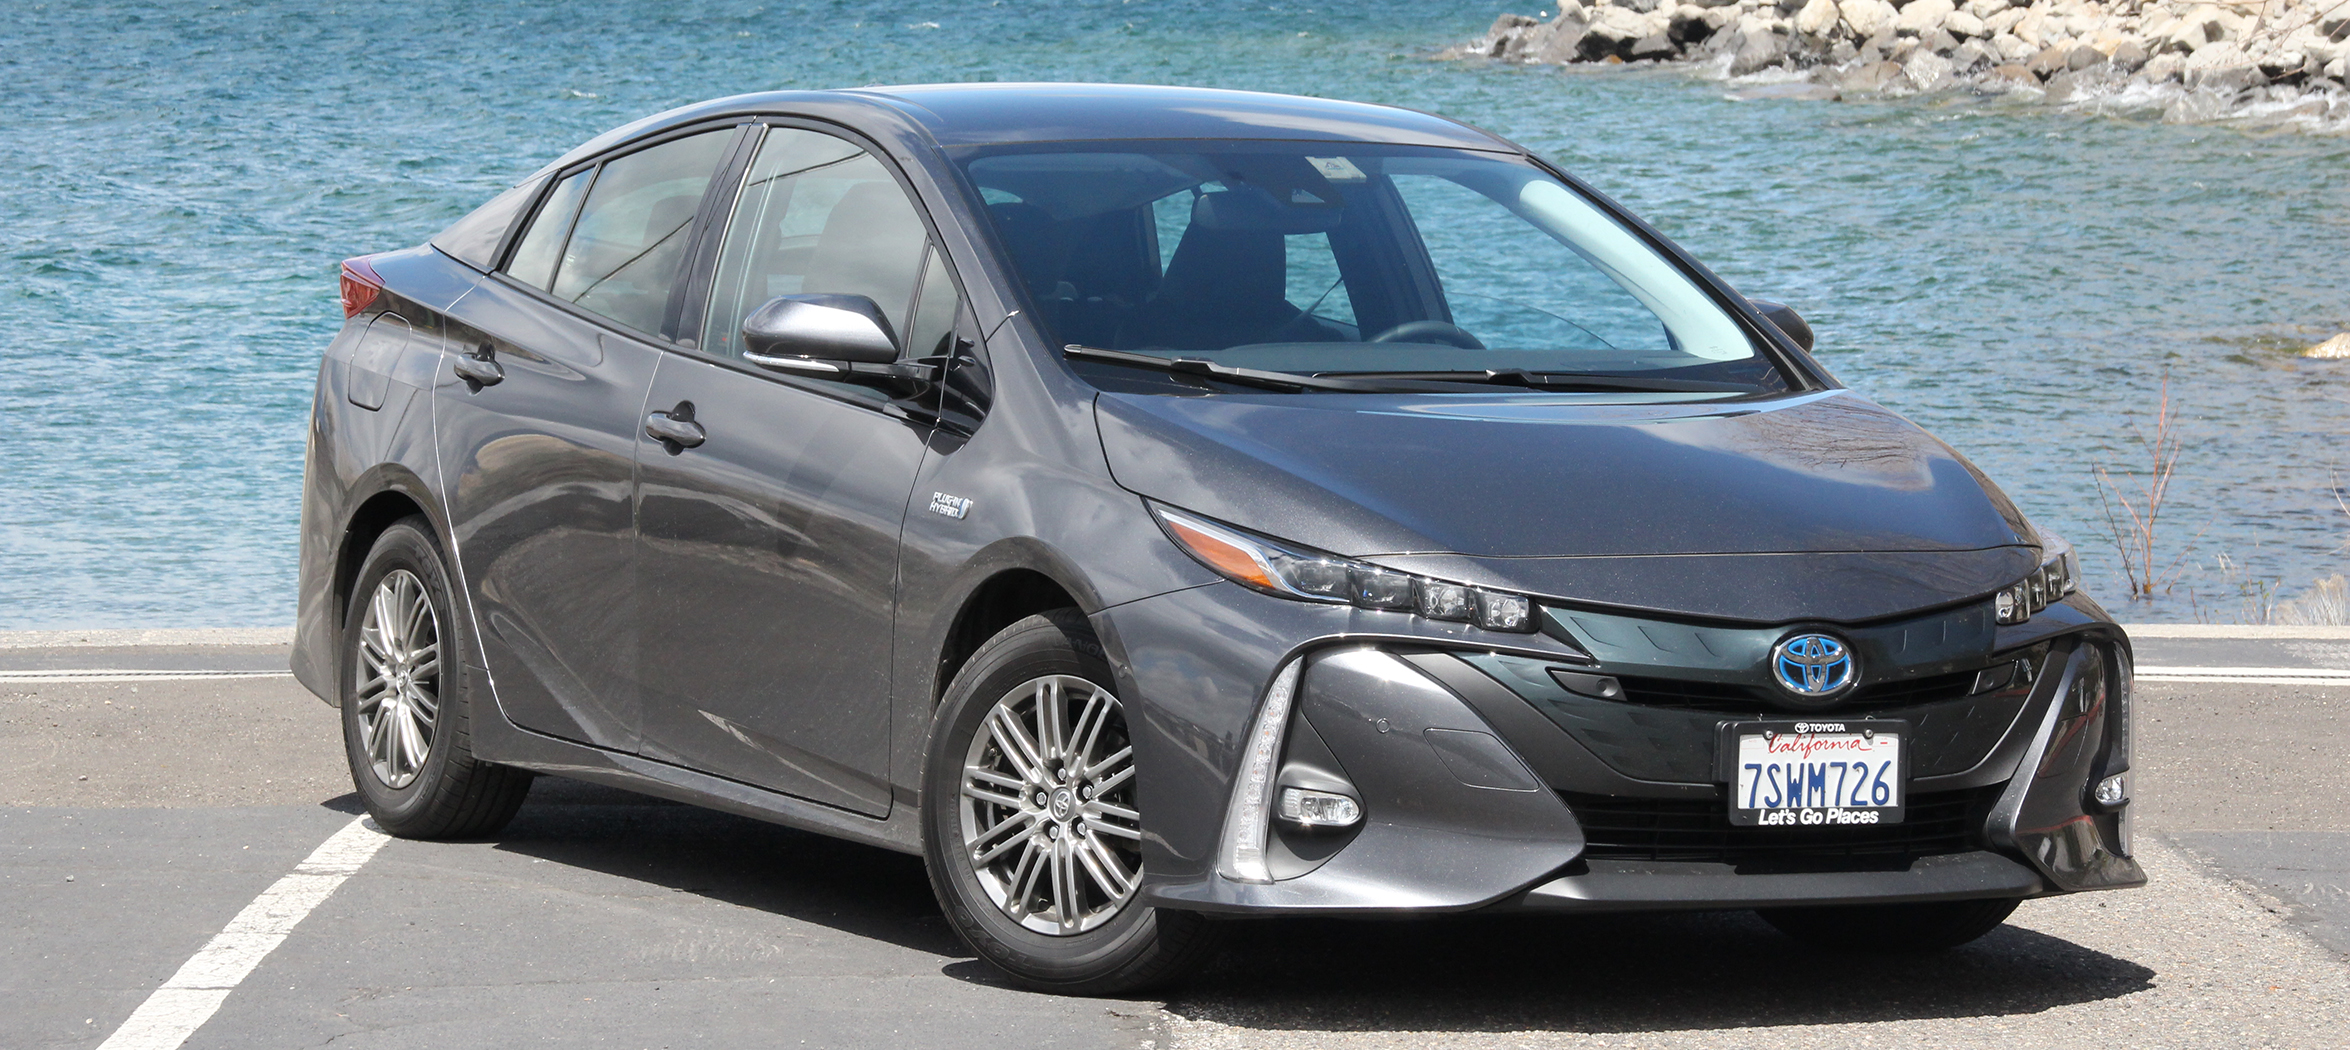 The New Prius Prime Is Most Efficient Car In Its Cl With An Epa Estimated 133 Mpg Every Detail Has Been Optimized To Make It Both Advanced And